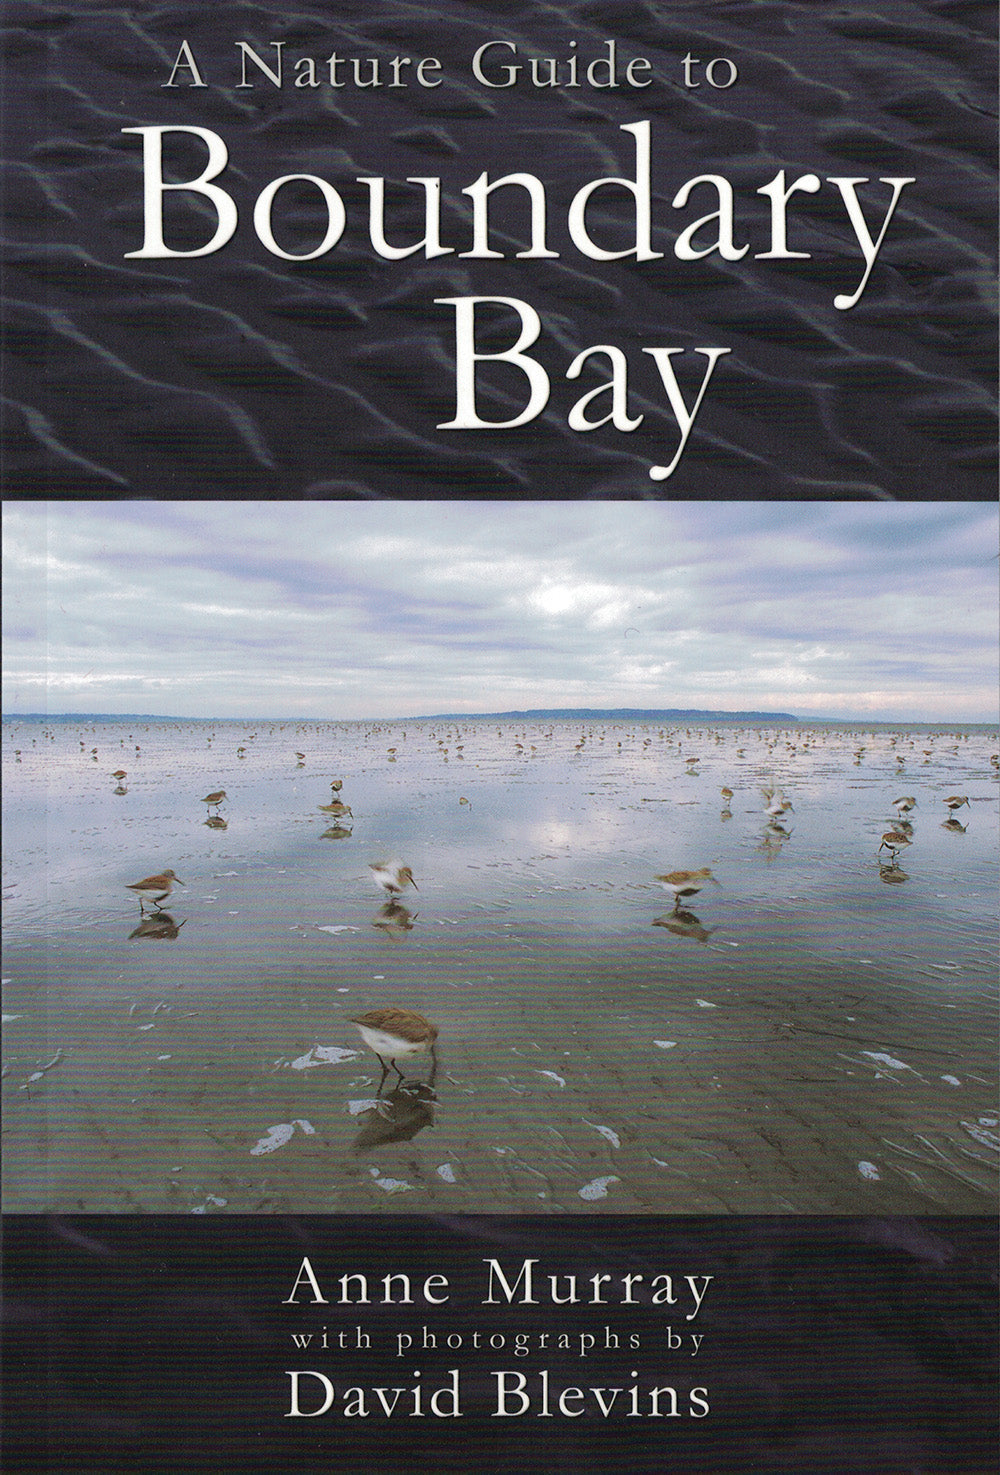 A Nature Guide to Boundary Bay